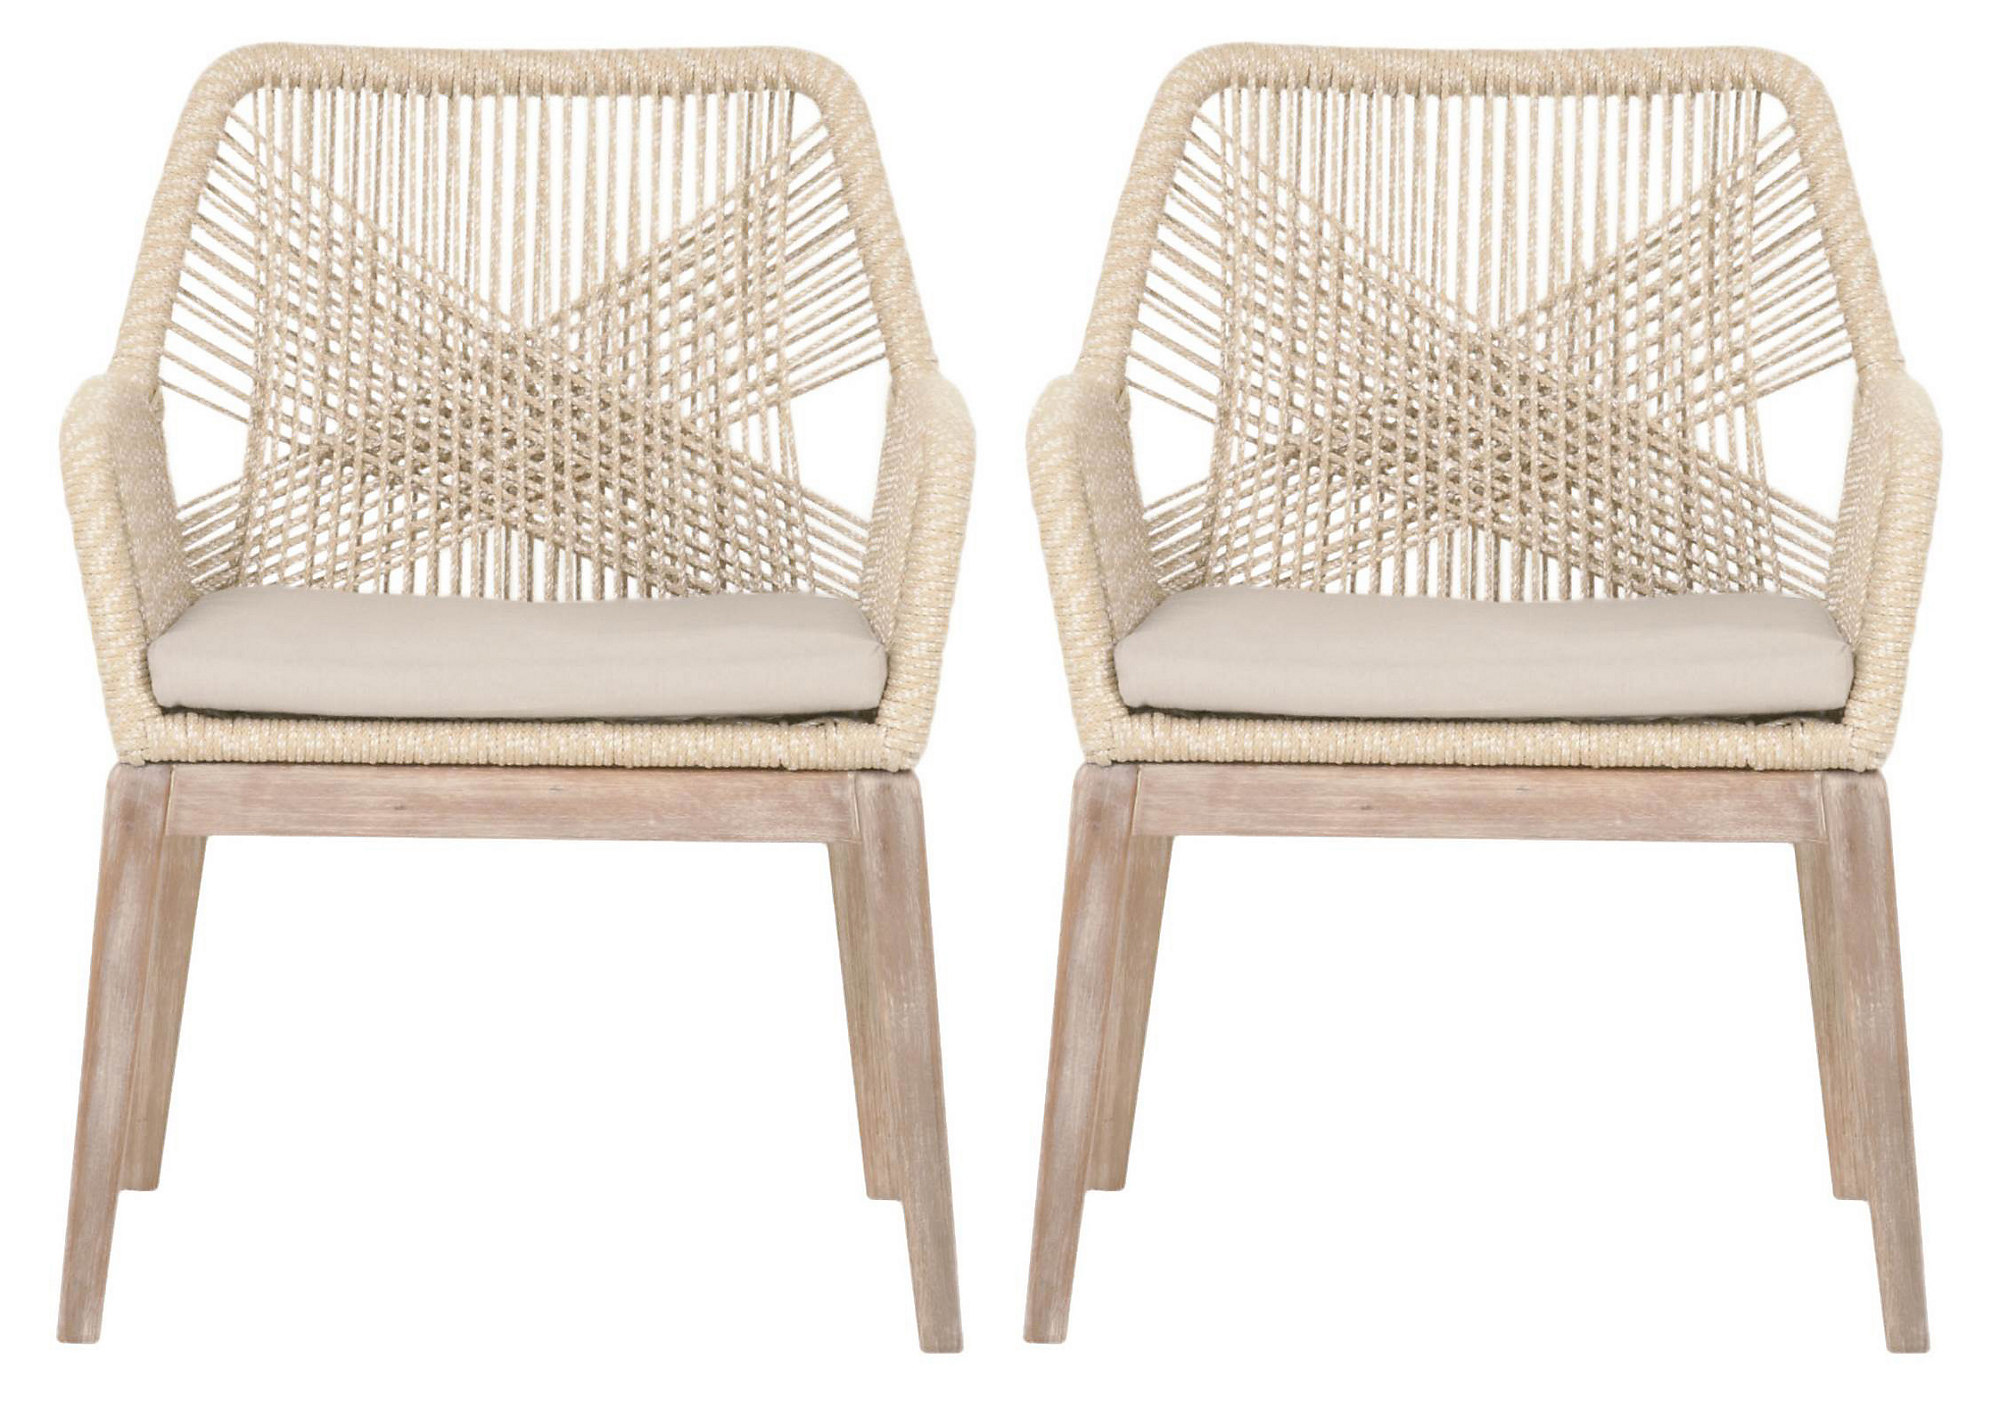 Orient Express Loom Chairs